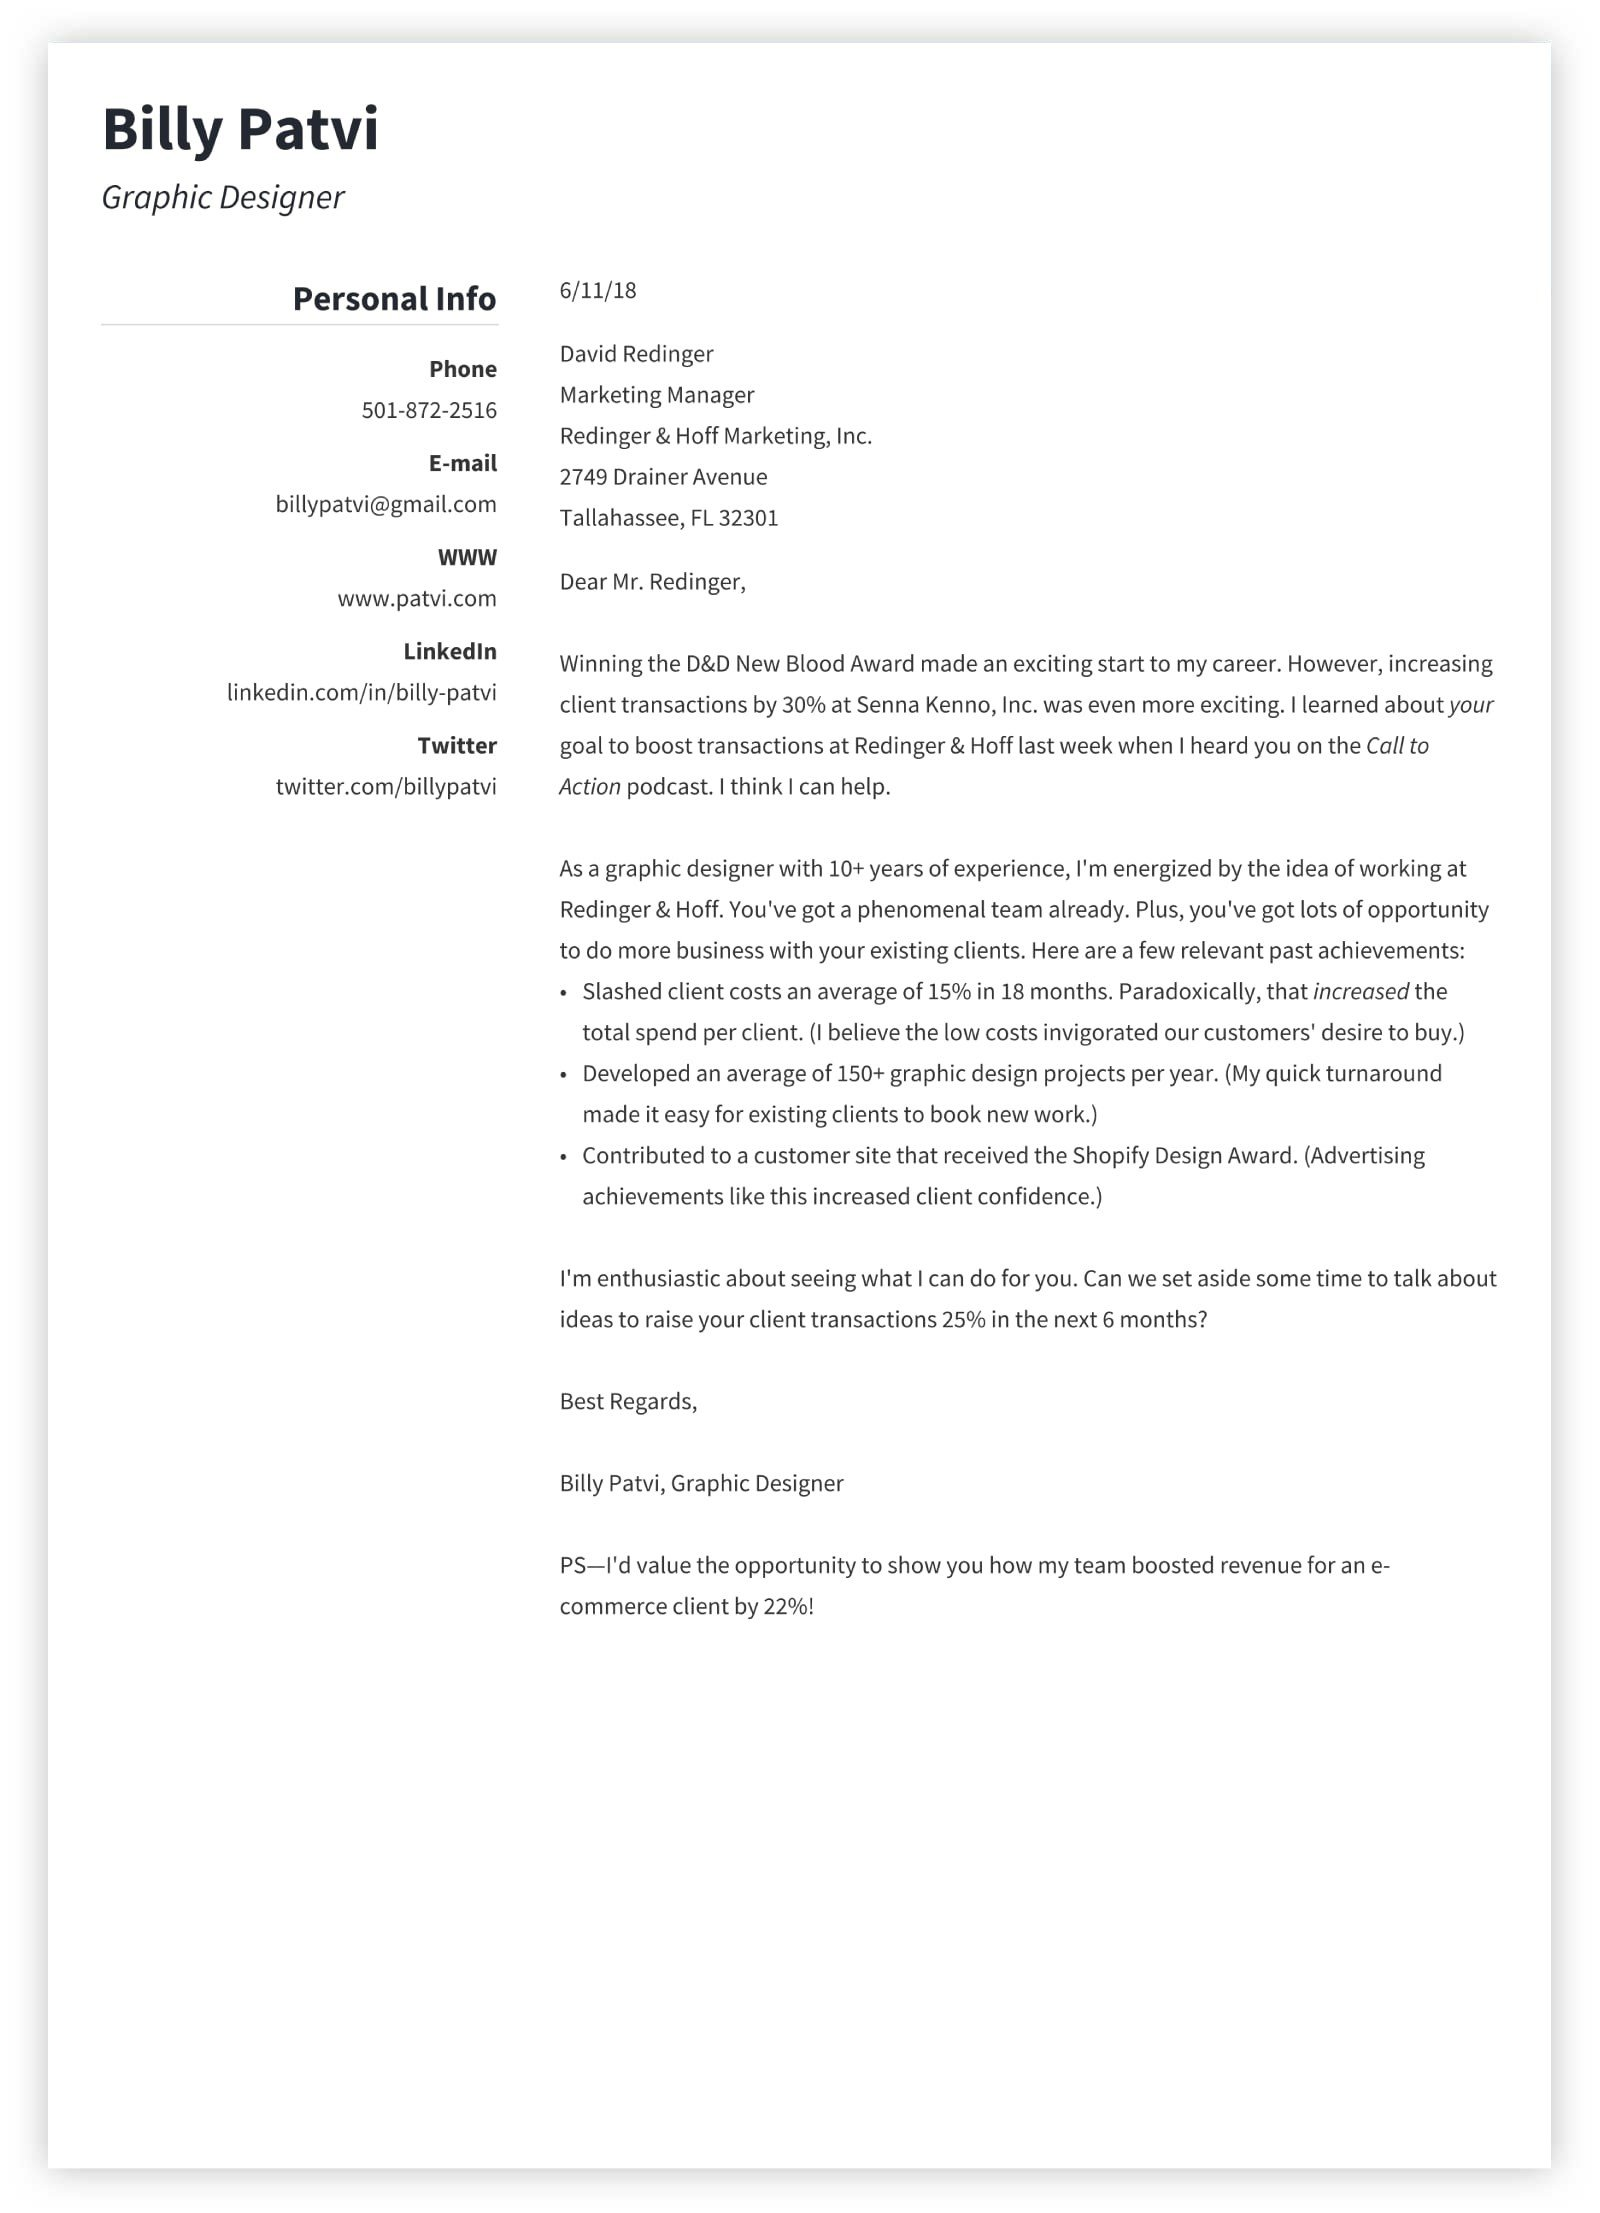 How To Write A Cover Letter Application Letter 12 Examples For All Jobs